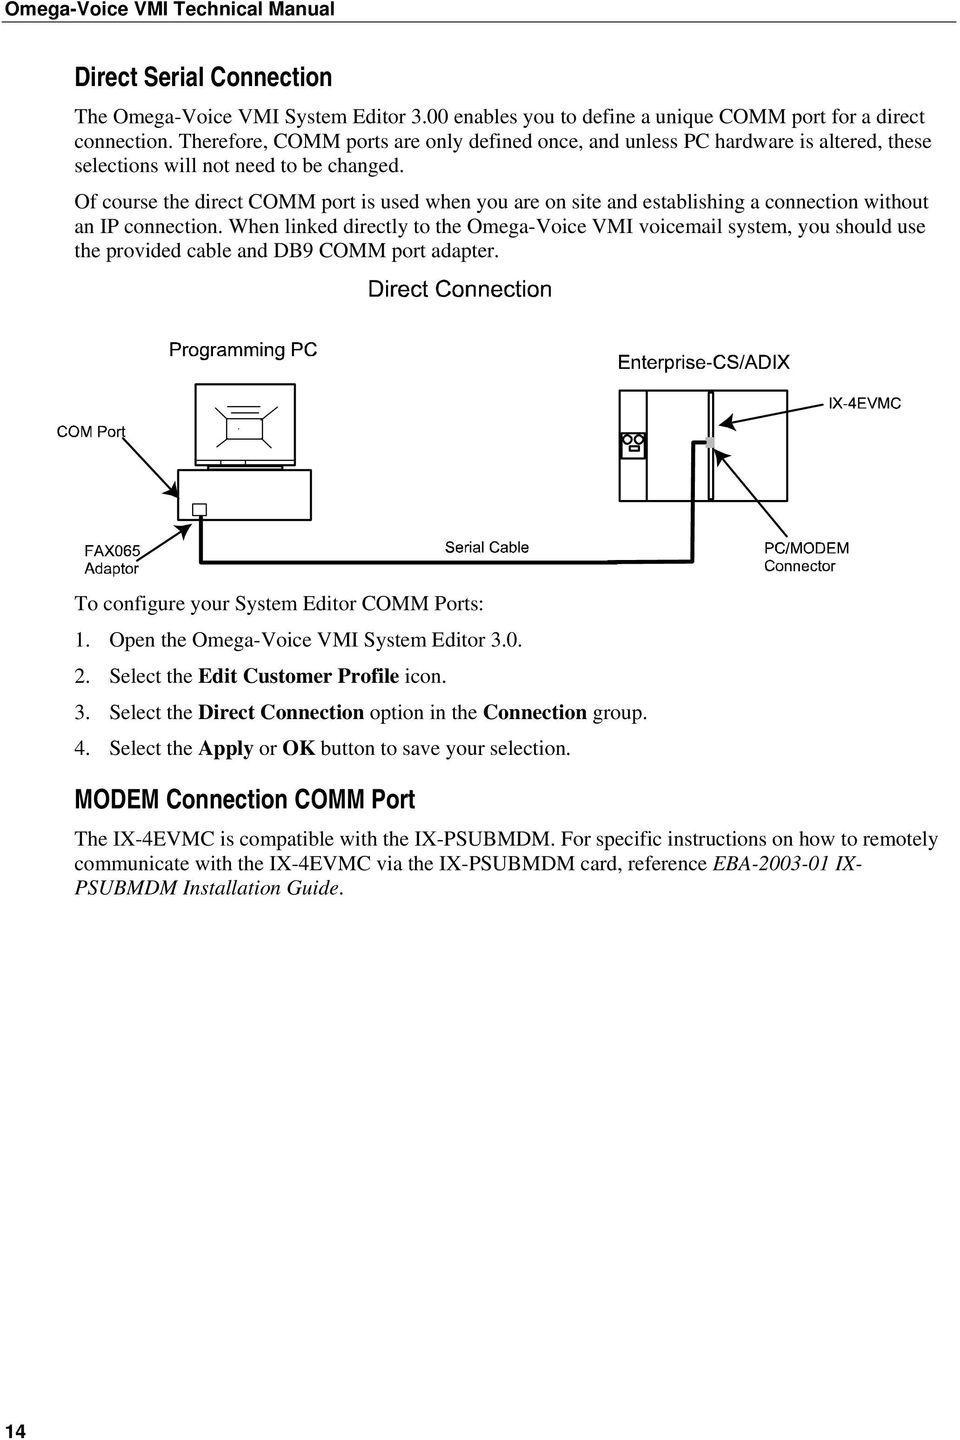 Technical Manual Fifth Edition Pdf Vmi Wiring Diagram Of Course The Direct Comm Port Is Used When You Are On Site And Establishing A